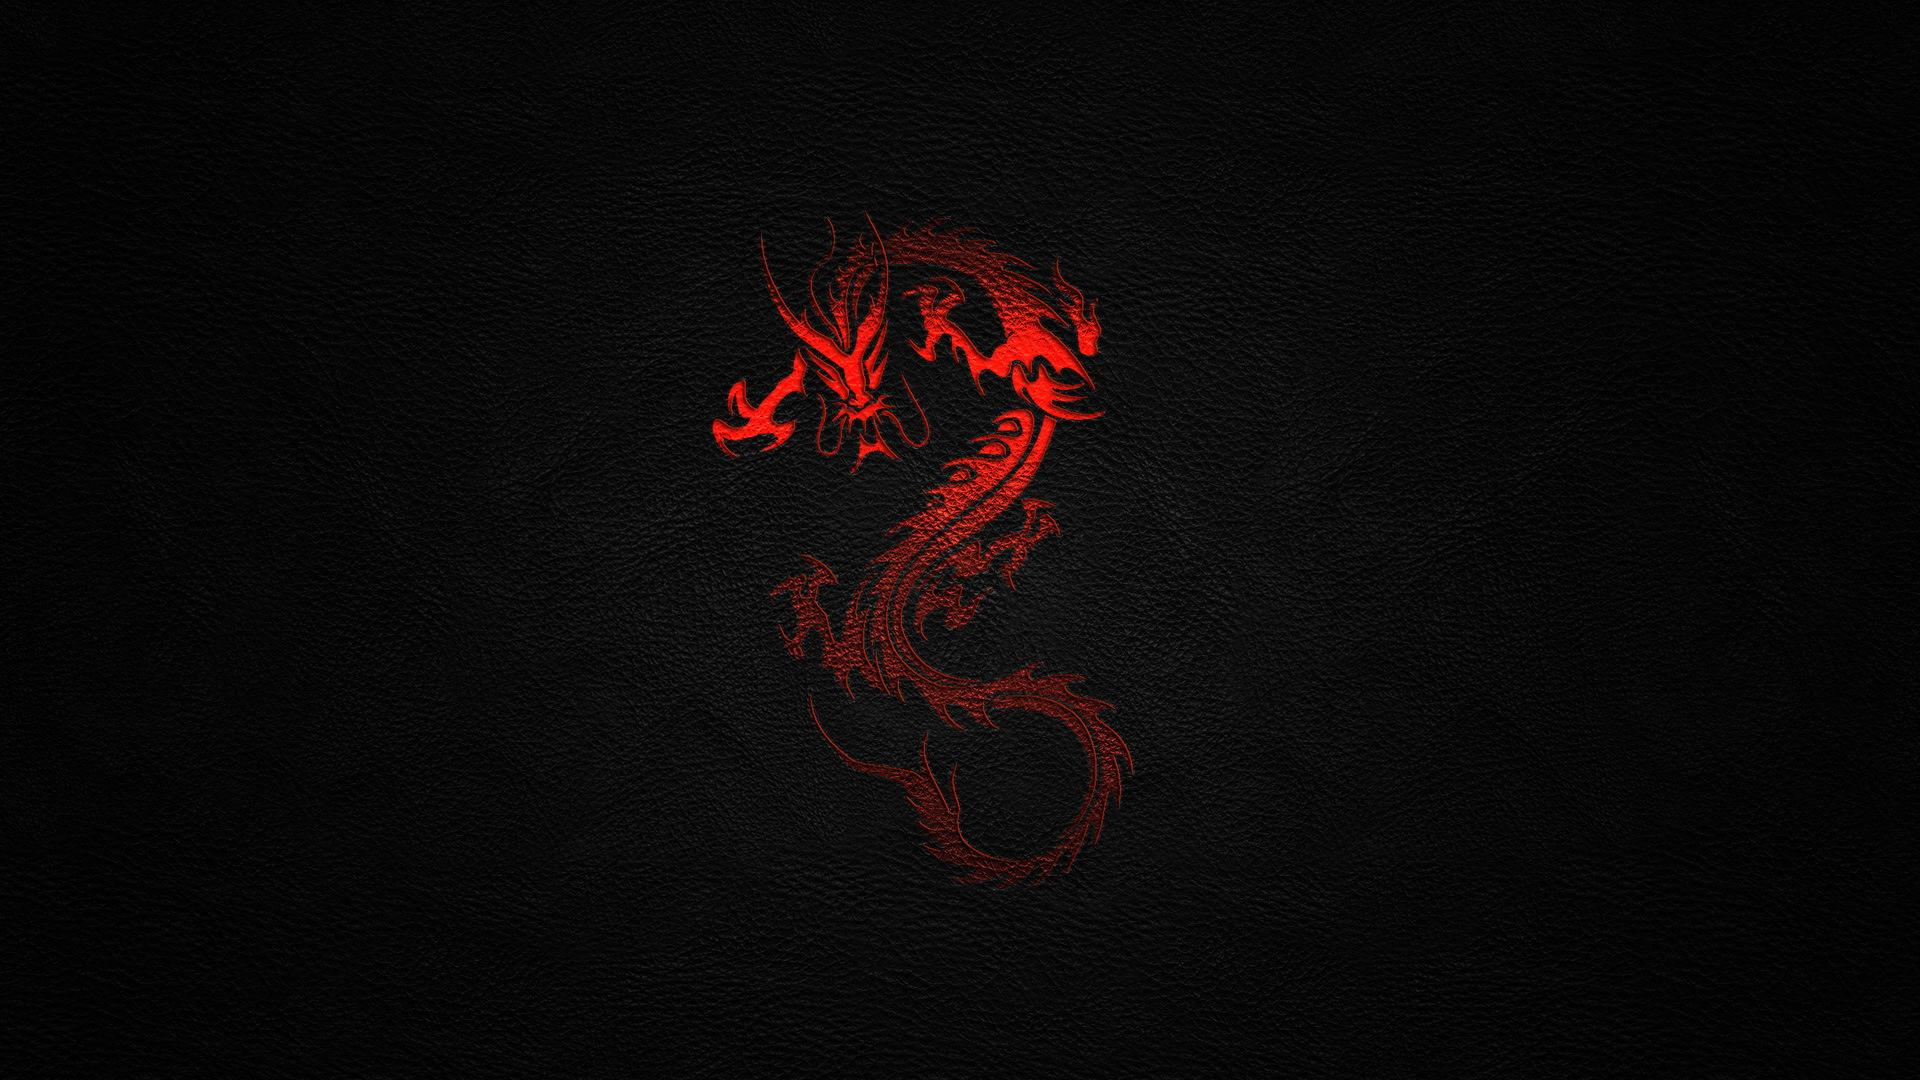 Hd wallpaper red and black - Red Dragon Hd Wallpapers Hd Wallpapers Inn